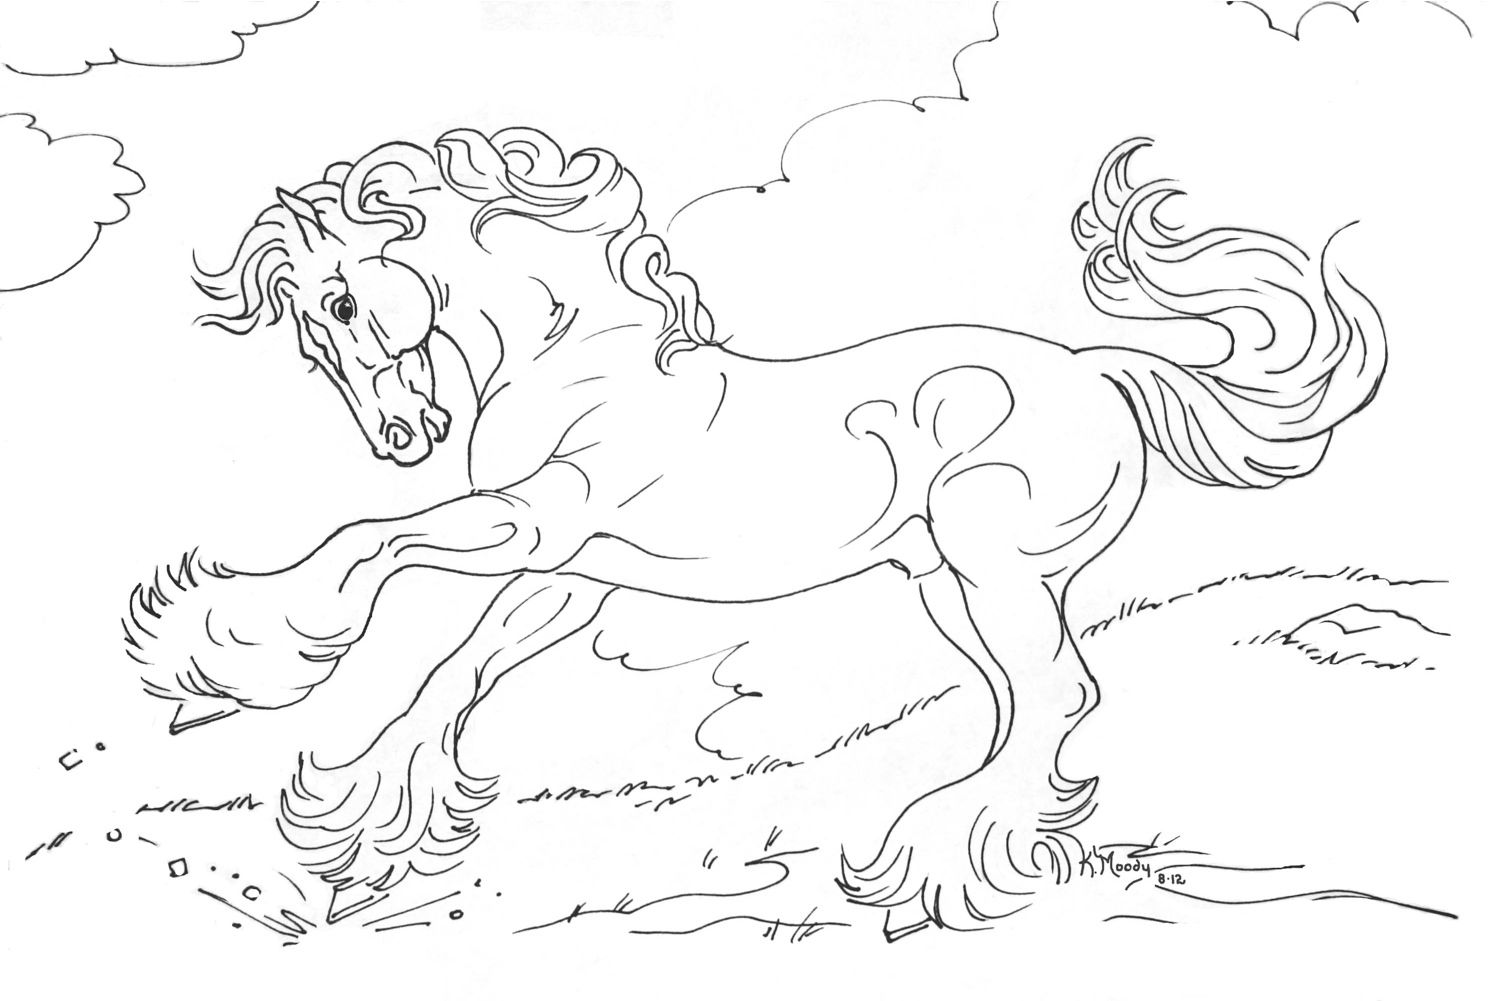 breyer horses coloring pages - Google Search | coloring pages ...